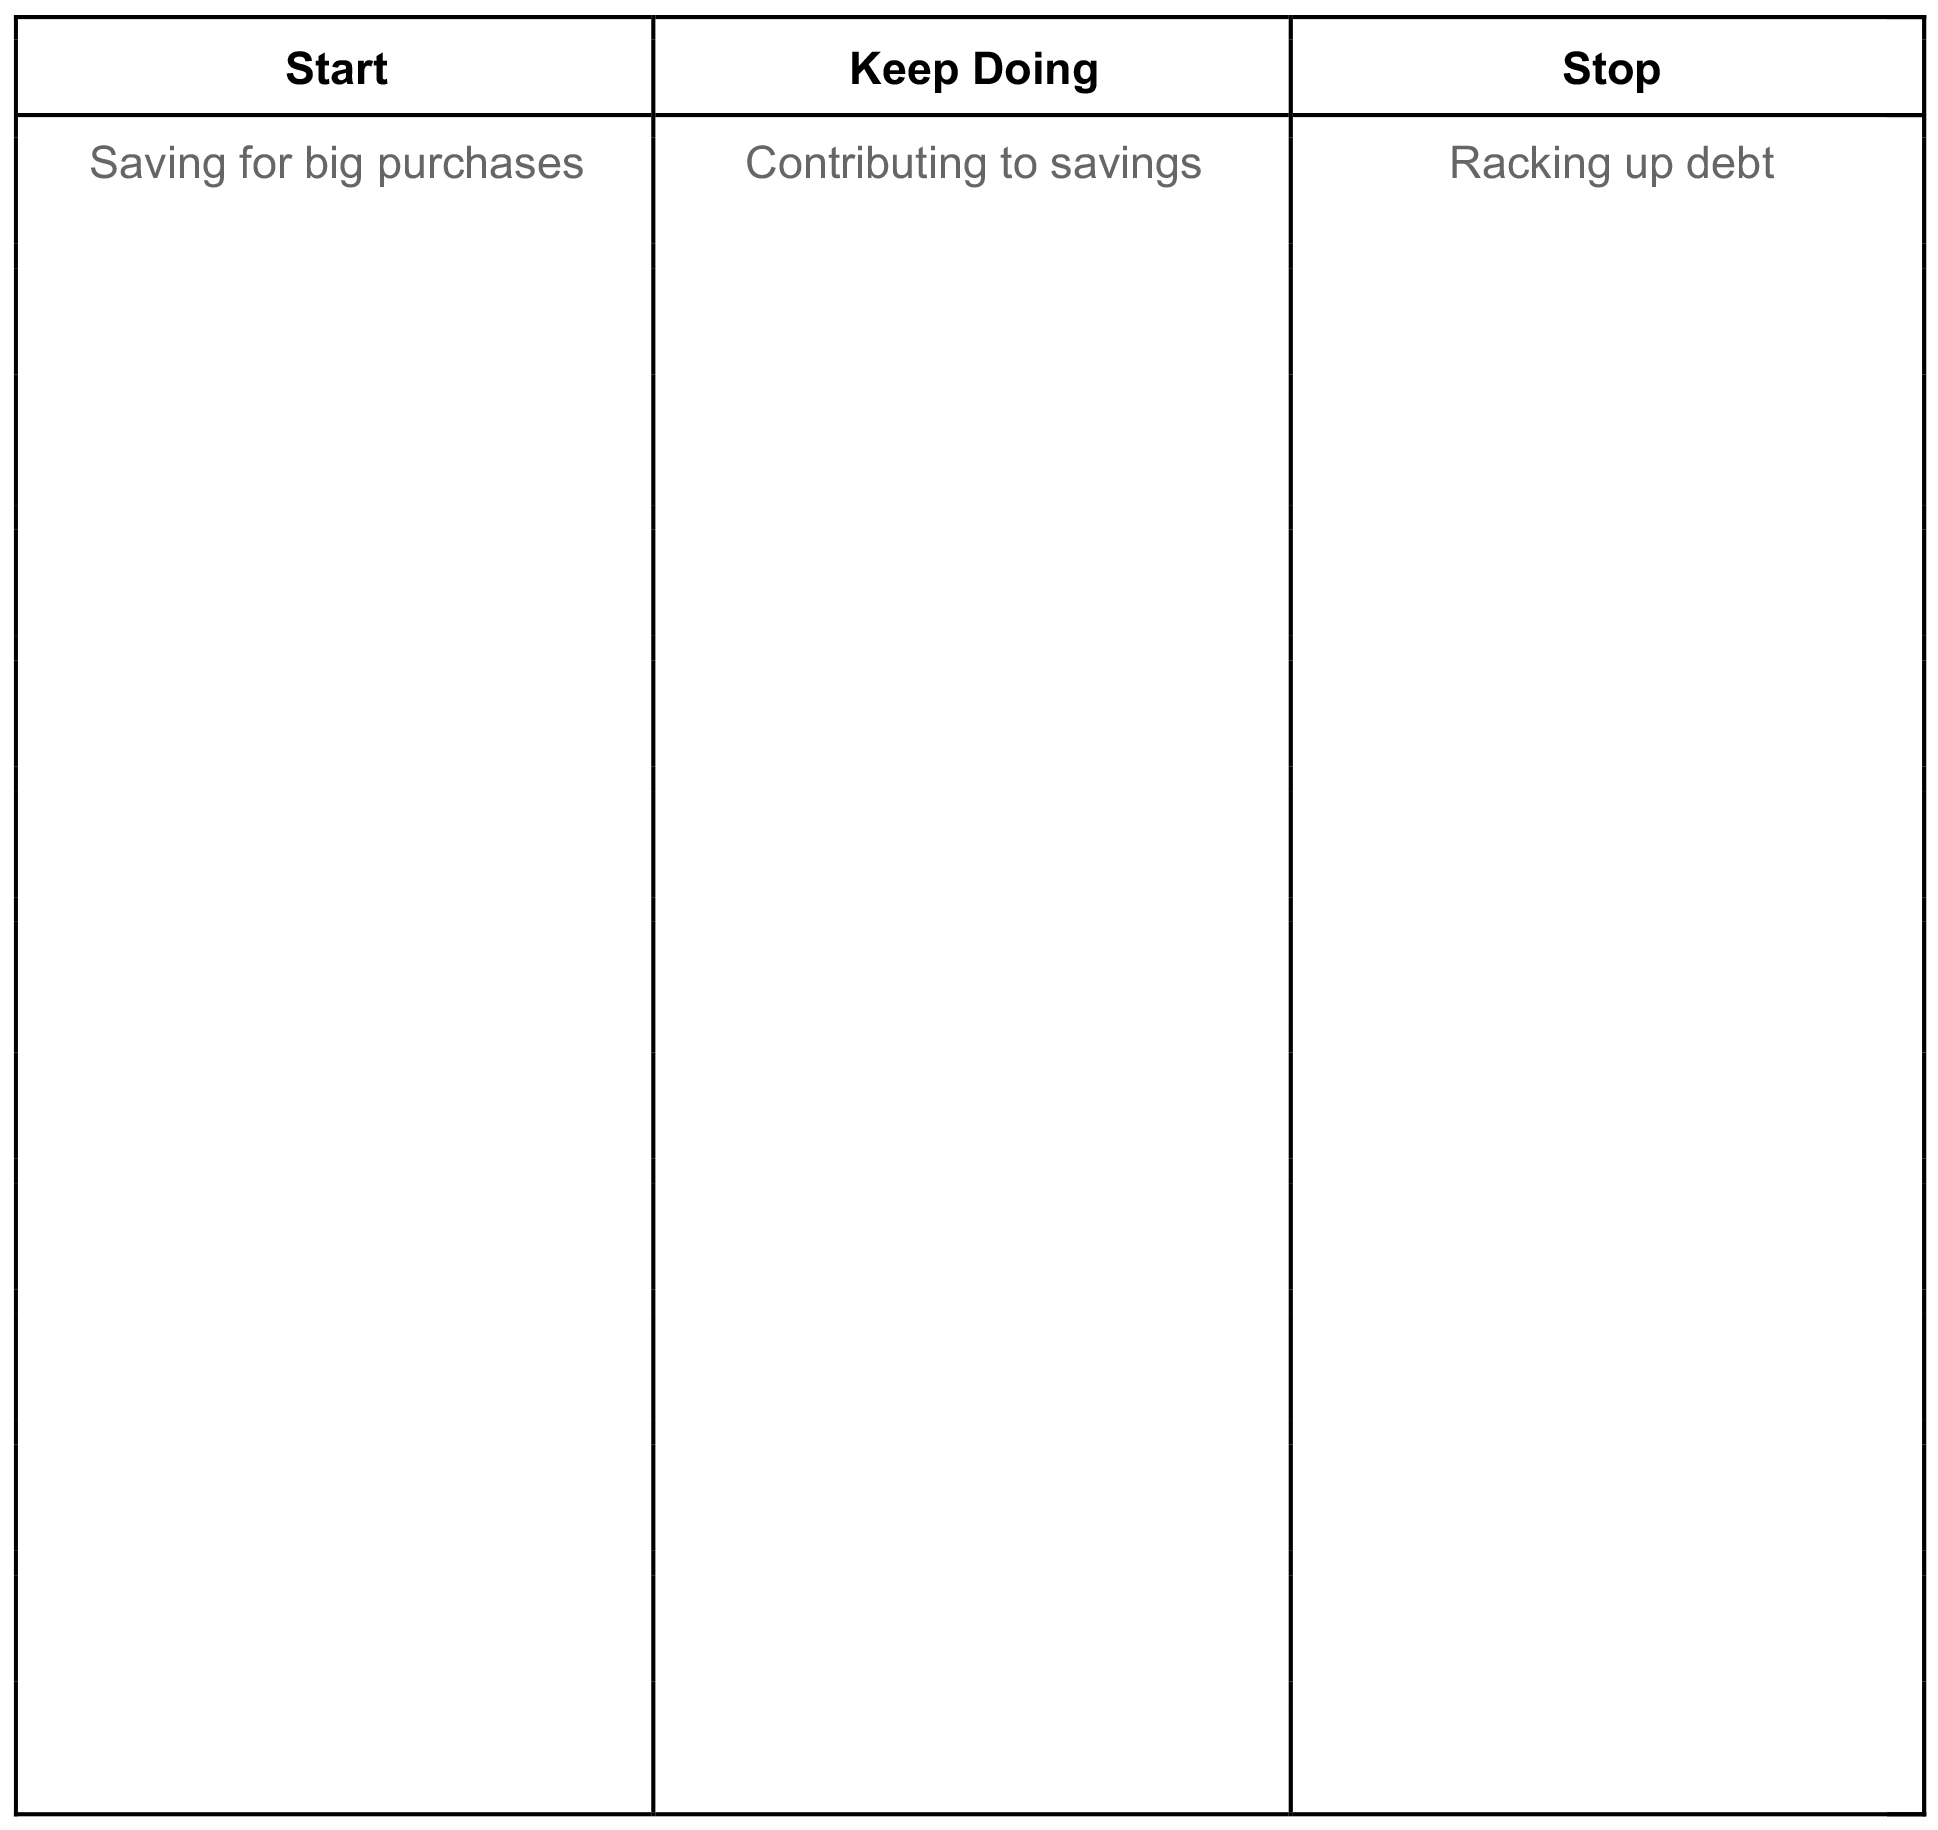 Financial Goal Branstorming Worksheet: A list of behaviors to start, keep doing, and stop